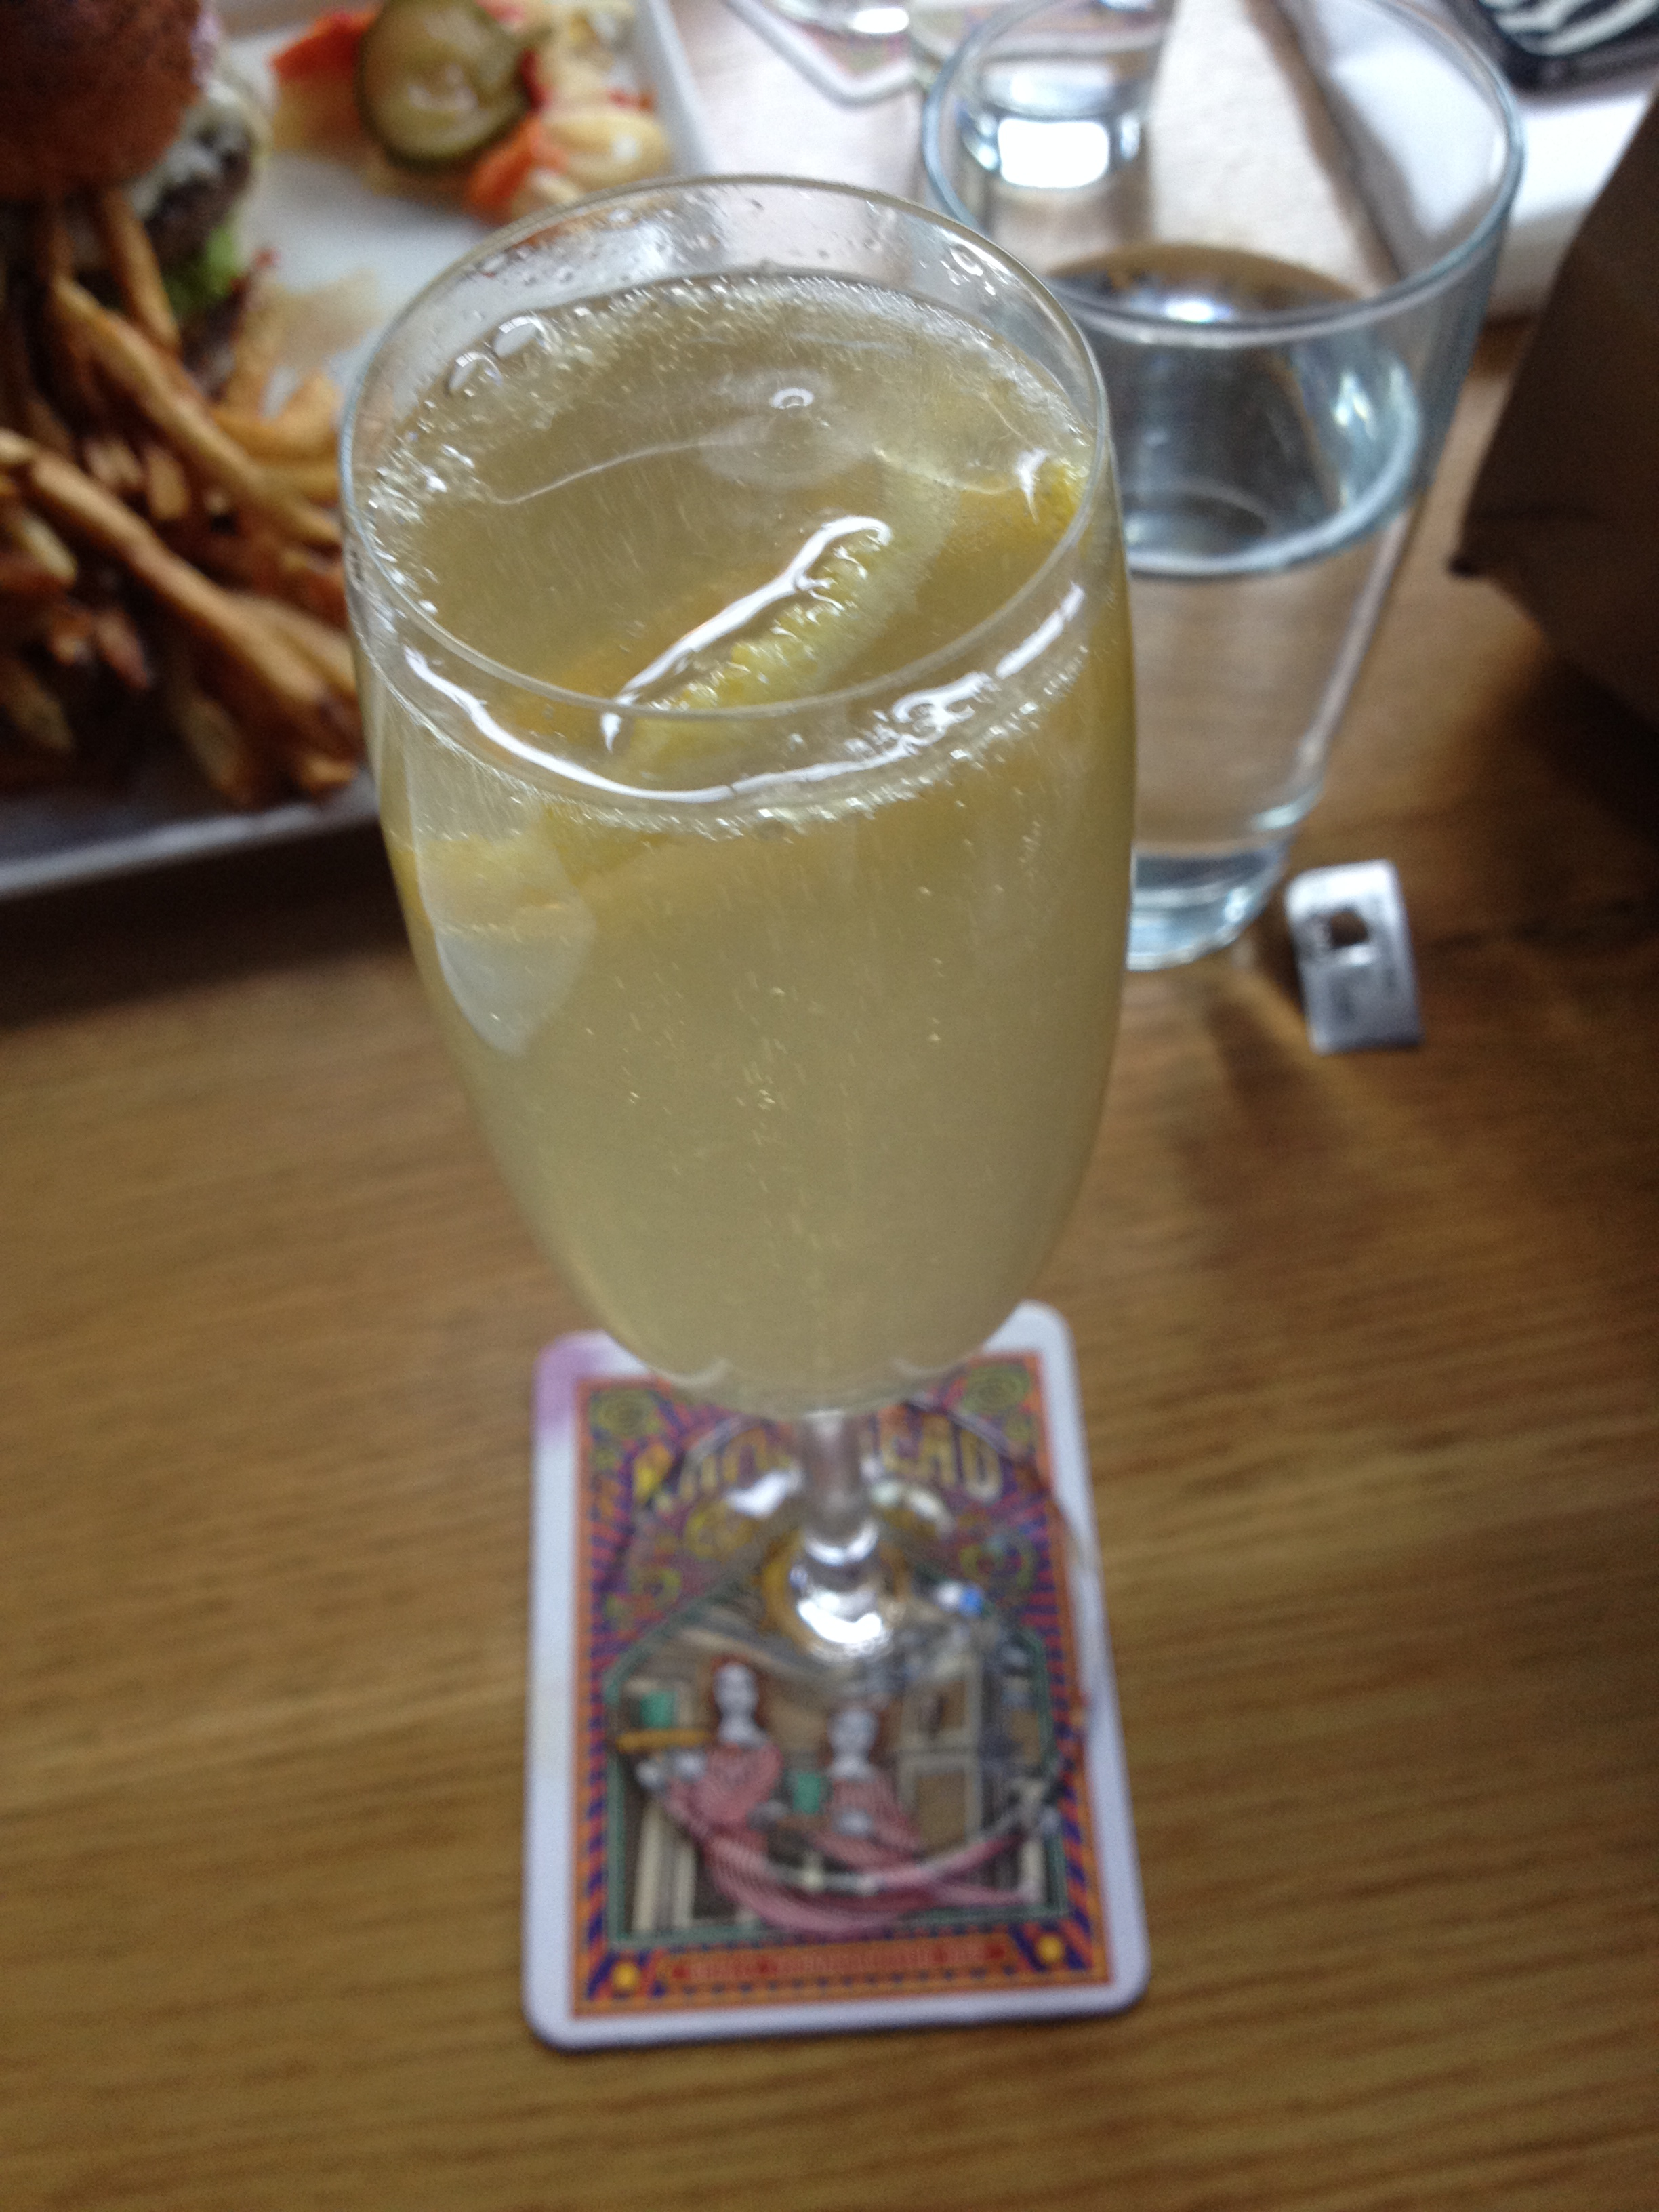 did find room for another drink – Lavender French 75